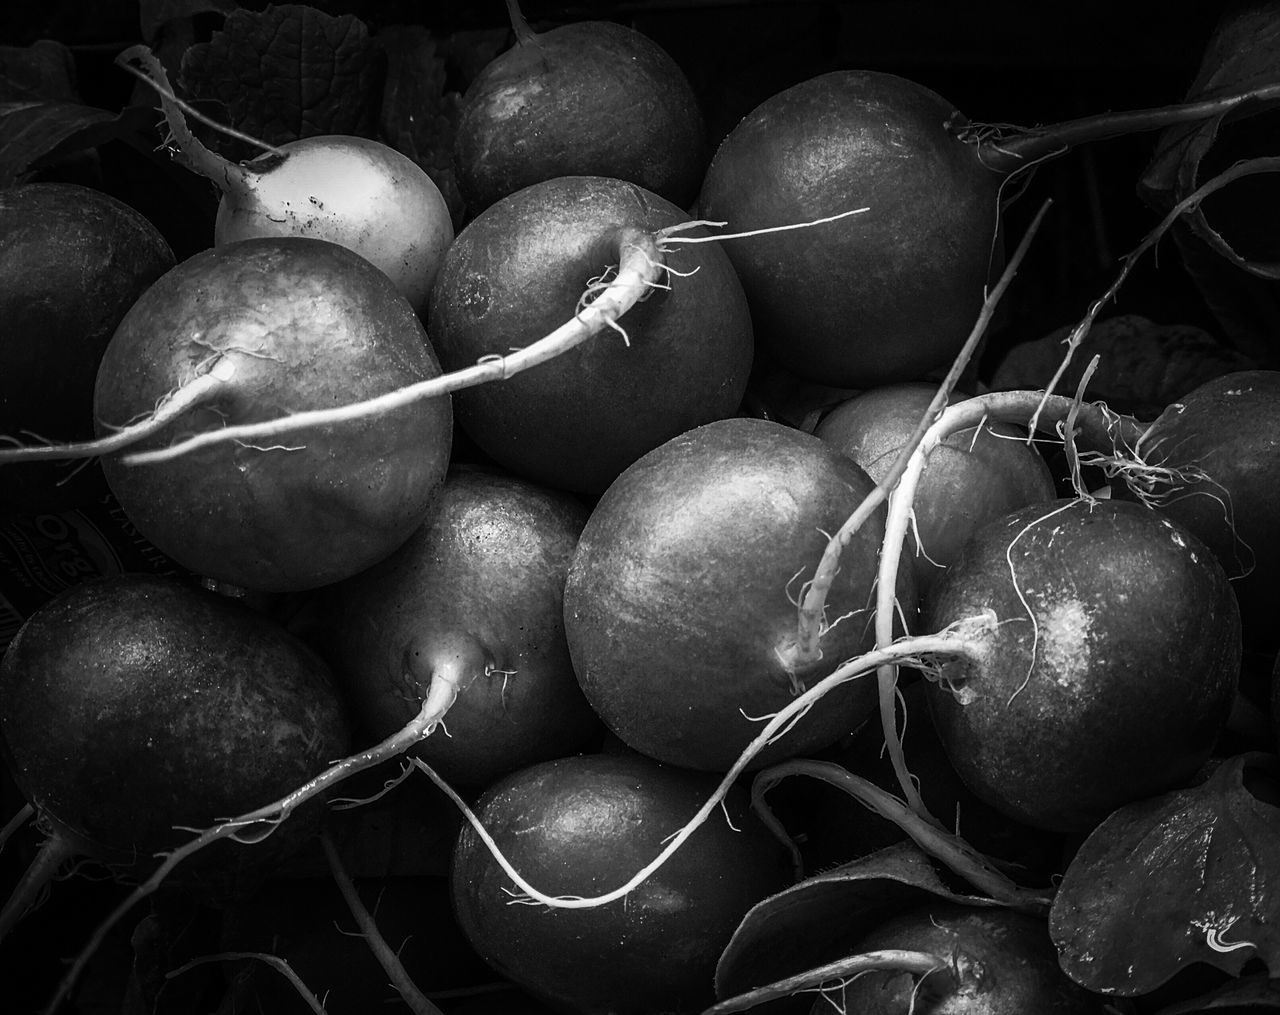 Black and white fresh produce radishes in a bunch Healthy Eating Freshness Food Food And Drink Vegetable Market Farm To Table Produce Fresh Produce Vegan Vegetarian Food Black And White Radishes Bunches Market Stall No People Large Group Of Objects Farmer Market Close-up